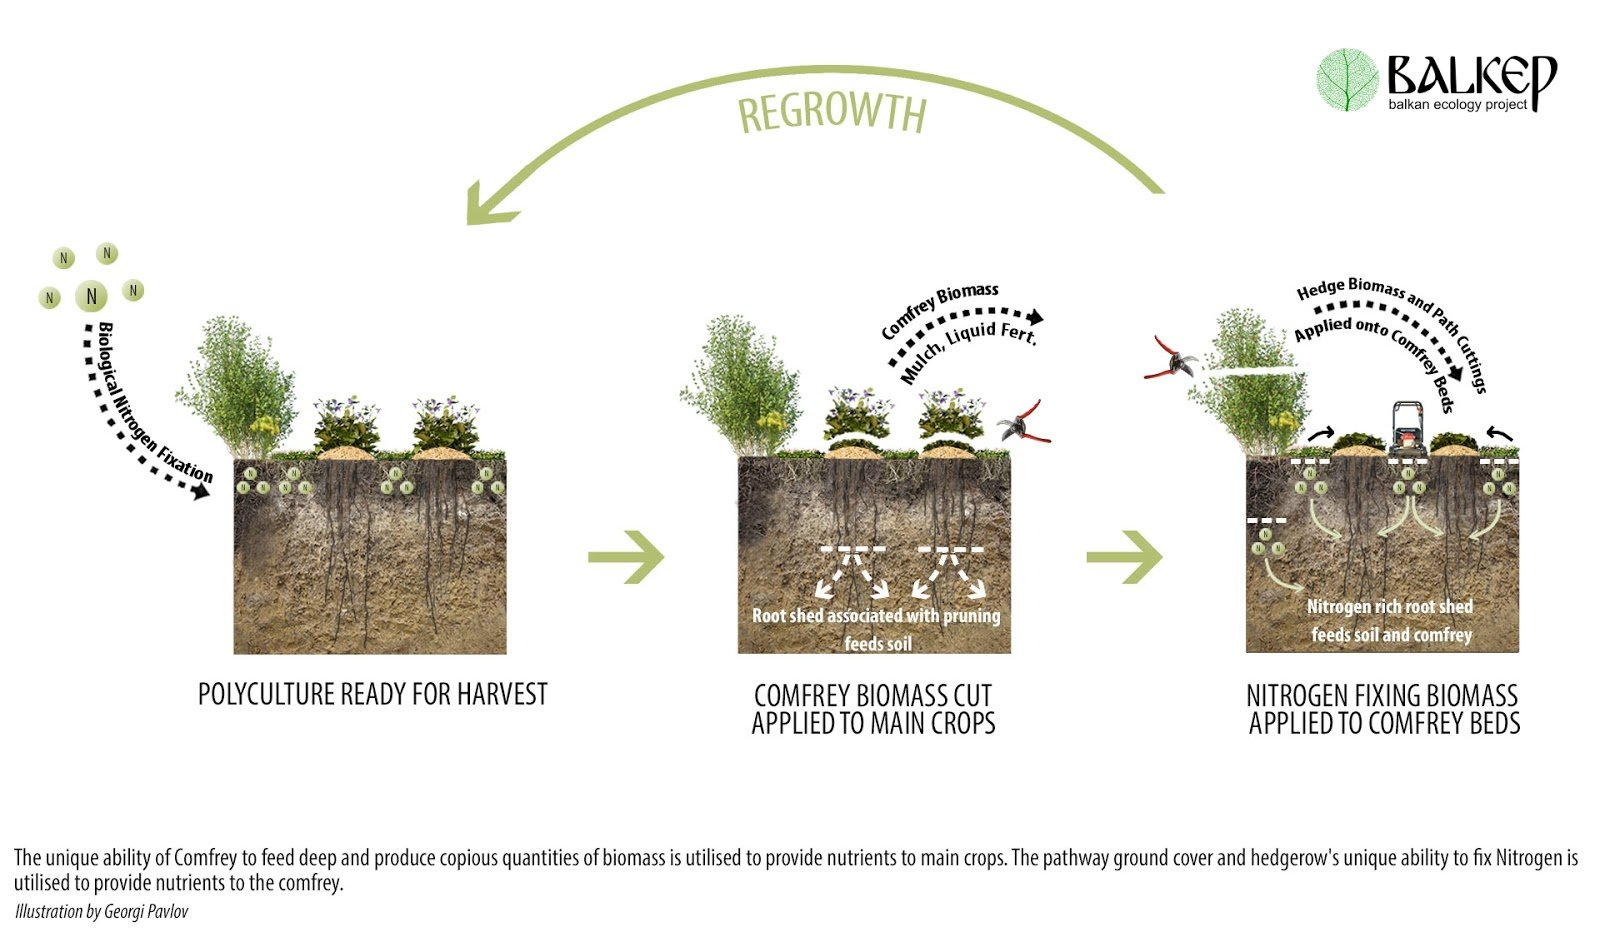 Permaculture_Polyculture_Balkan_Ecology_Project_Biomass_Belt